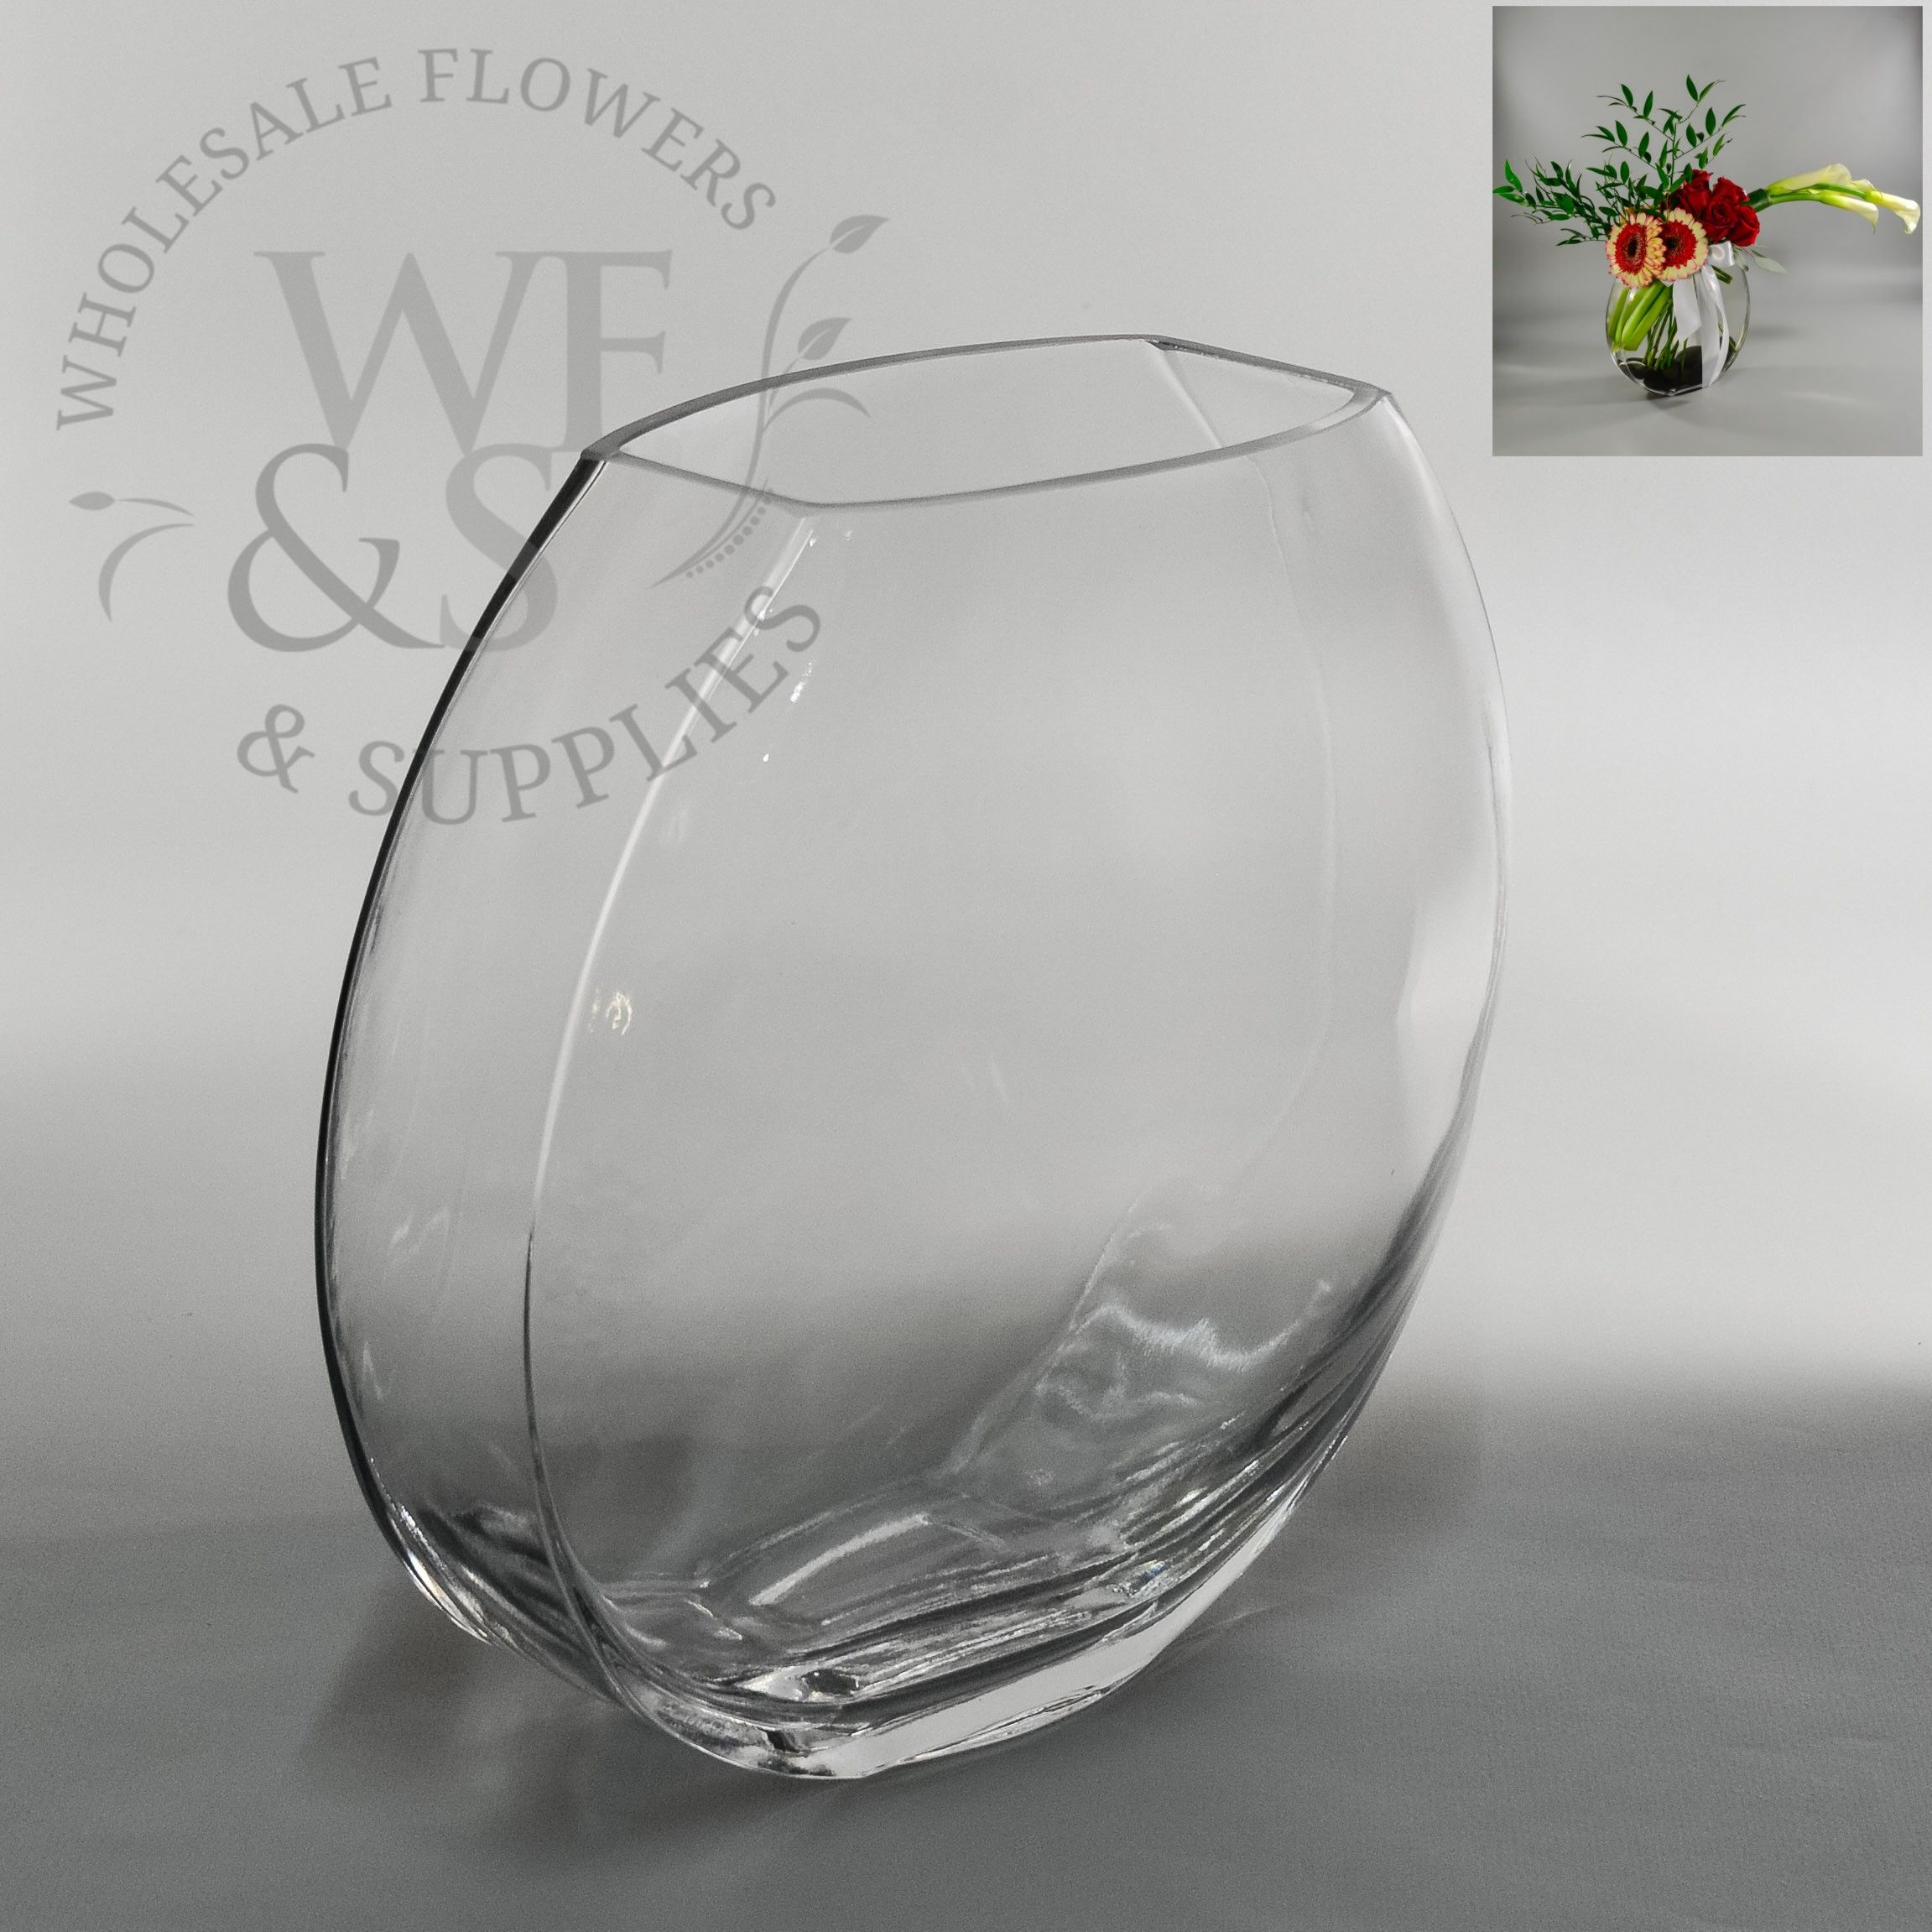 Flat sided fish bowl 9 tall wholesaleflowersandsupplies tall flattened oval glass vase wholesale flowers and supplies reviewsmspy